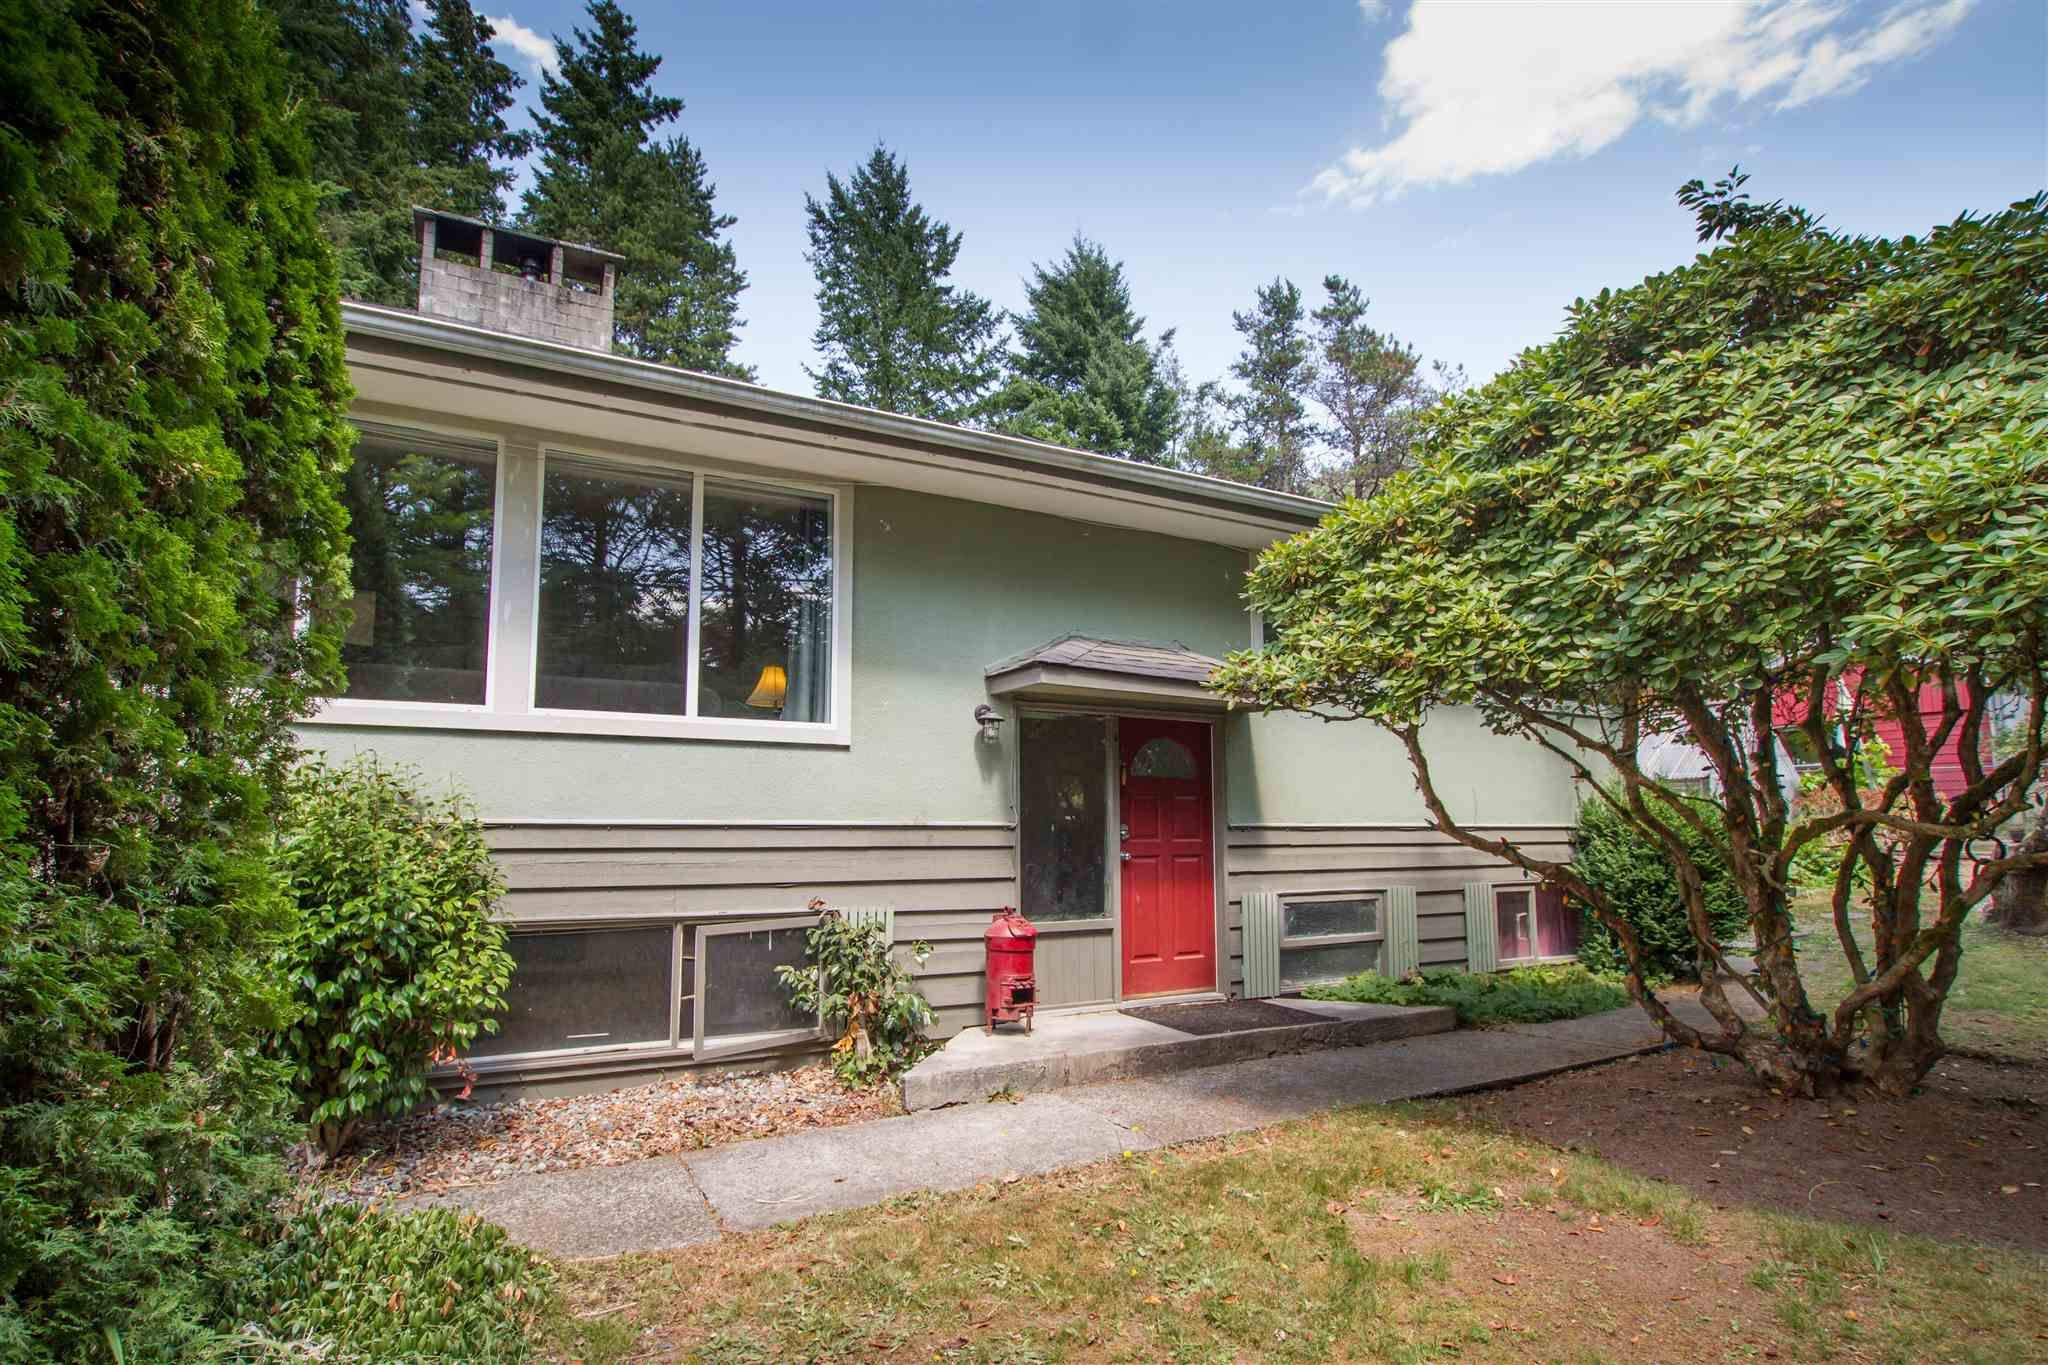 Main Photo: 1549 DEPOT Road in Squamish: Brackendale House for sale : MLS®# R2605847